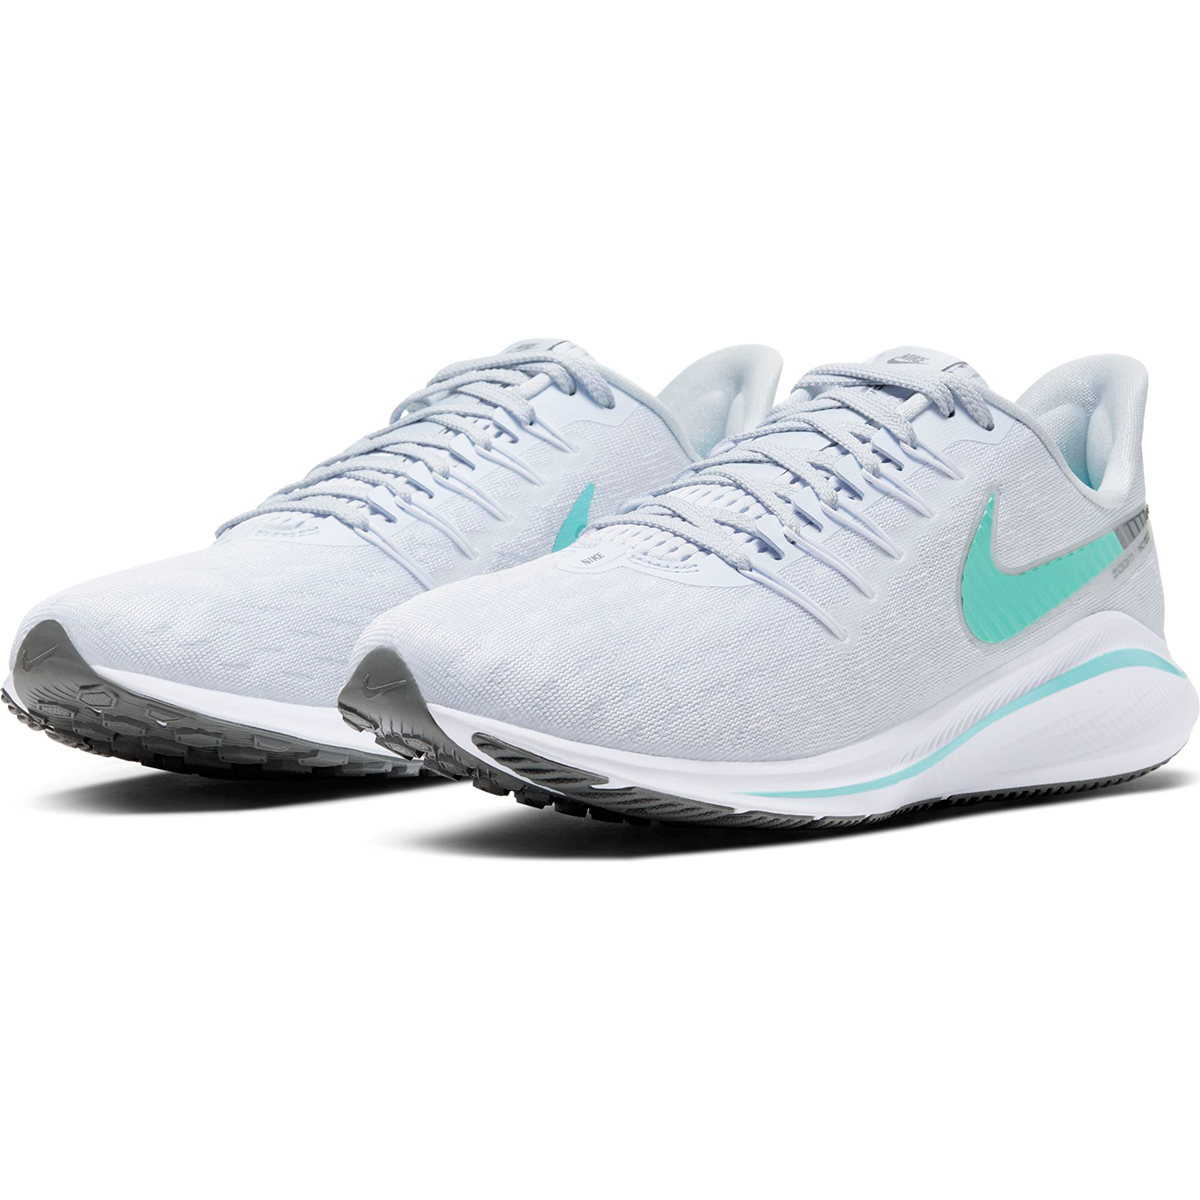 Women's Nike Air Zoom Vomero 14 Running Shoe - Color: Football Grey/White/Cool (Regular Width) - Size: 5, Football Grey/White/Cool, large, image 4